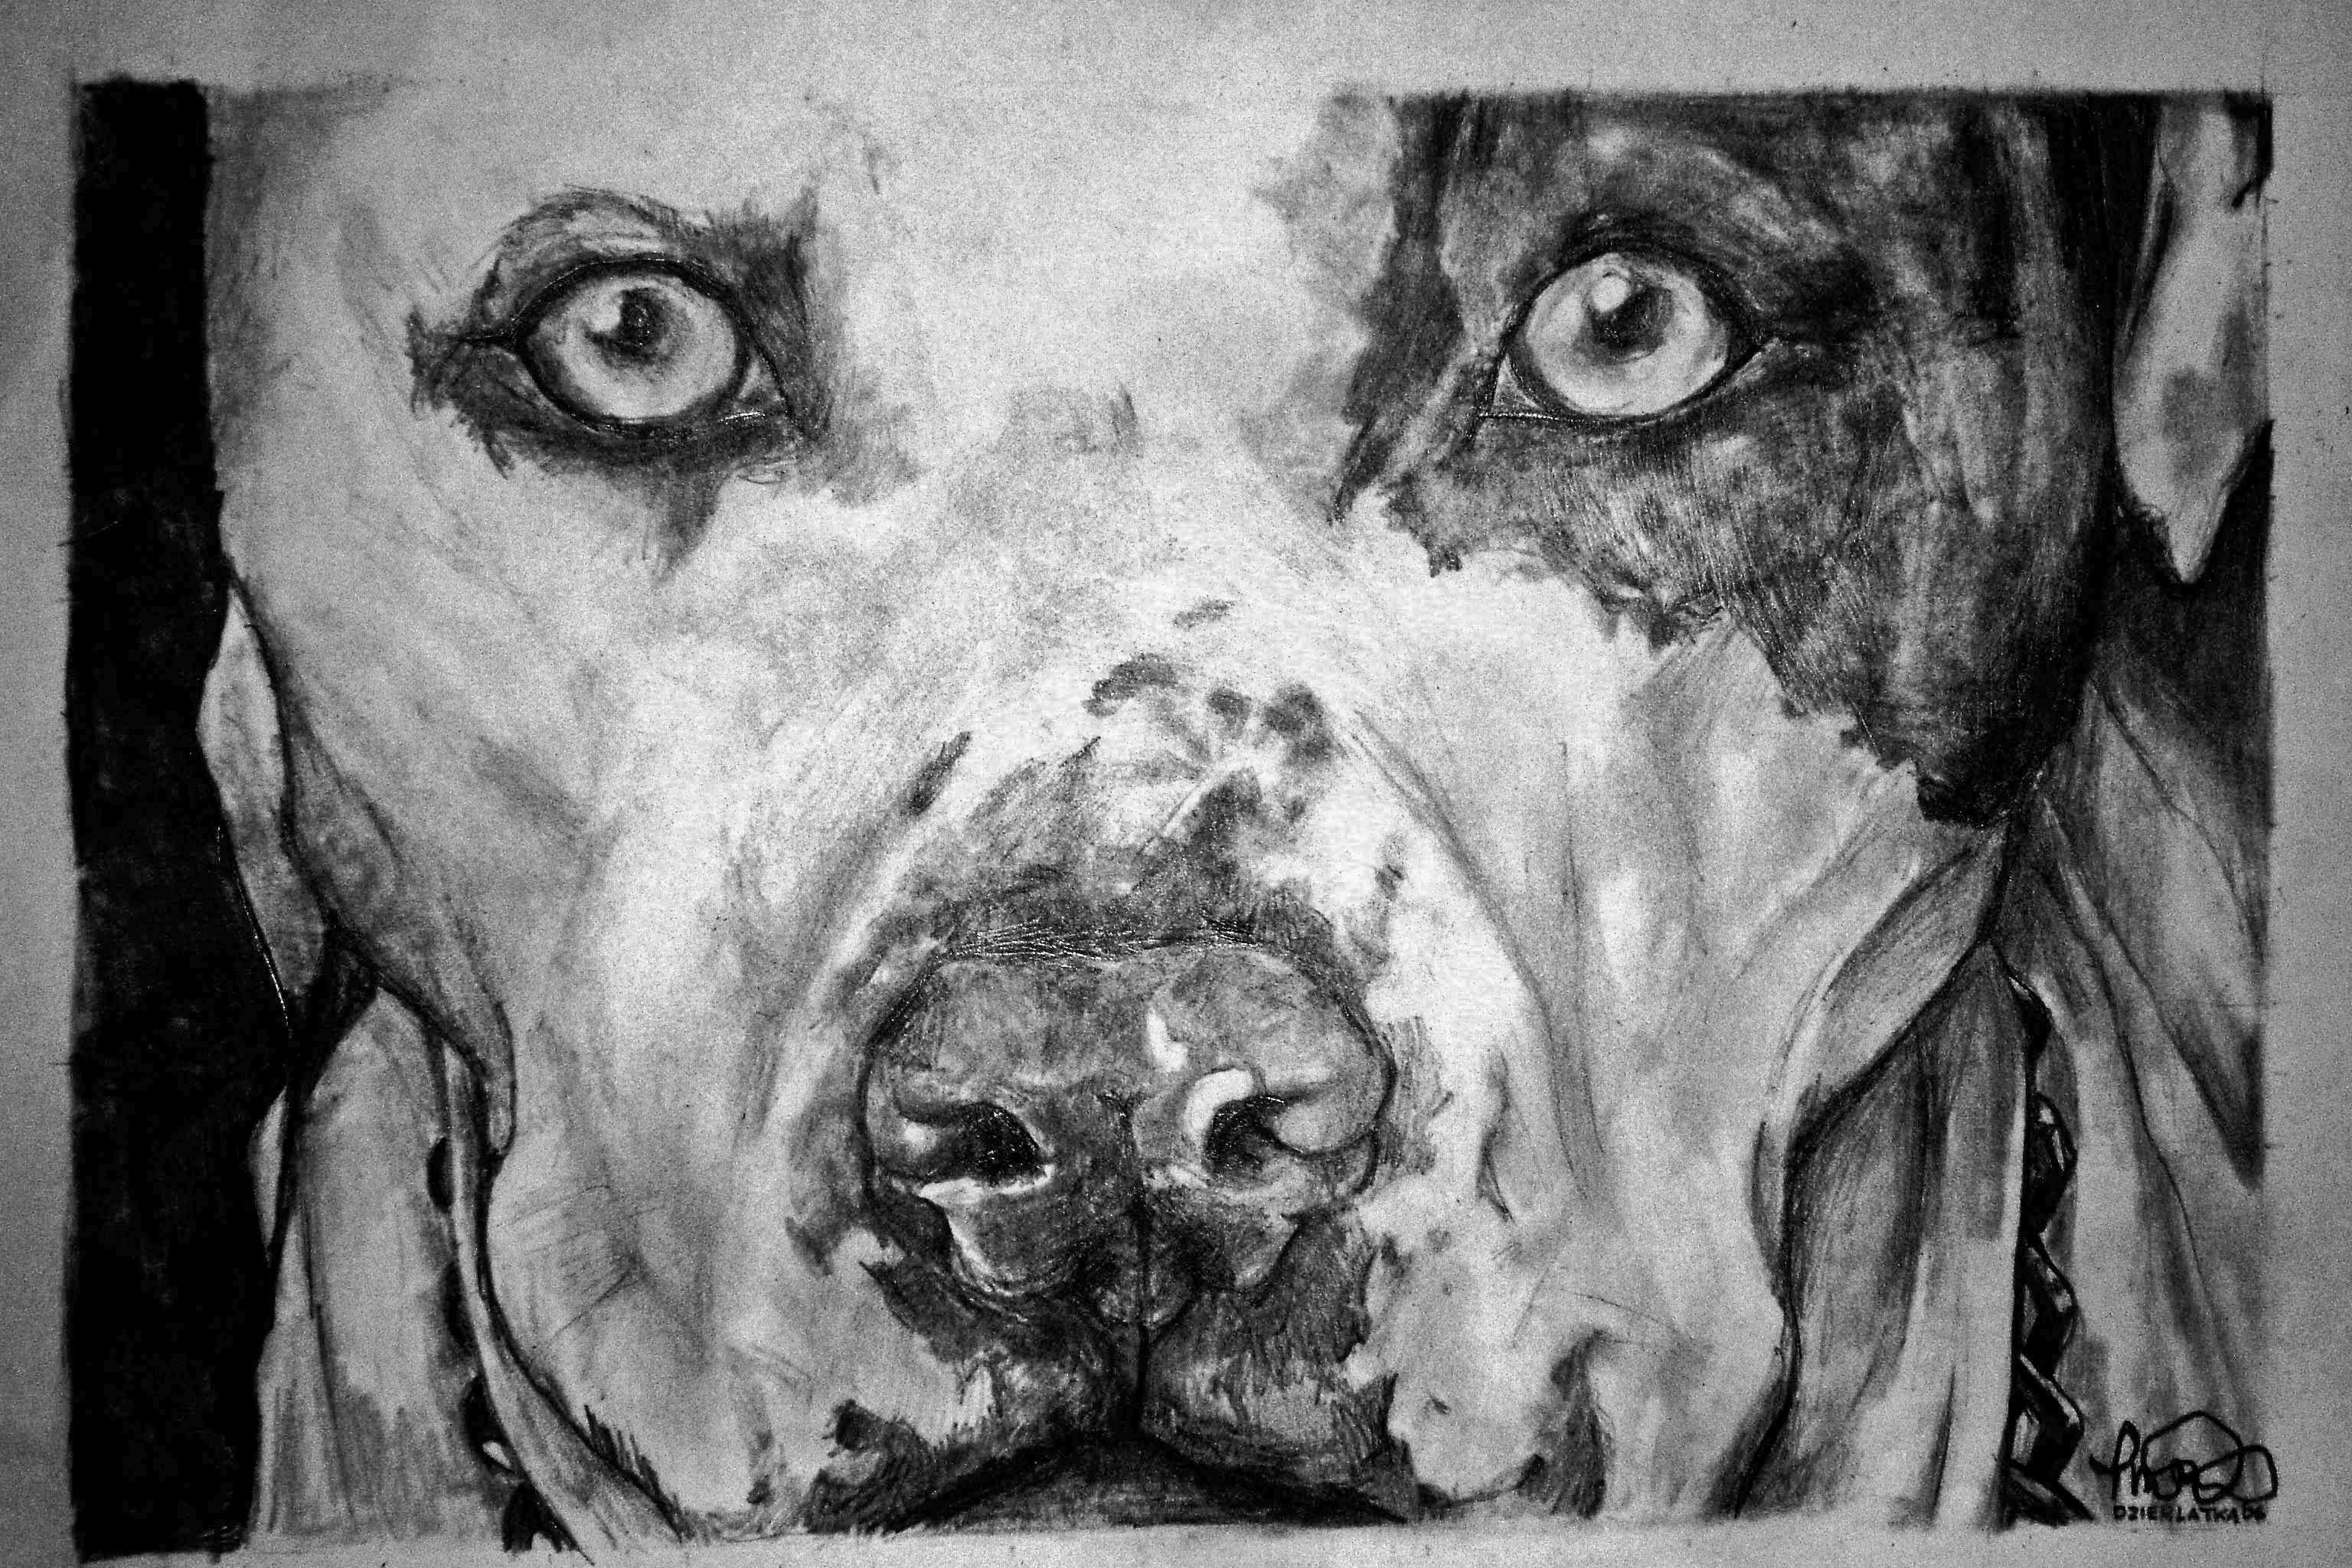 Drawn pitbull pencil drawing In In photo#26 drawing pencil